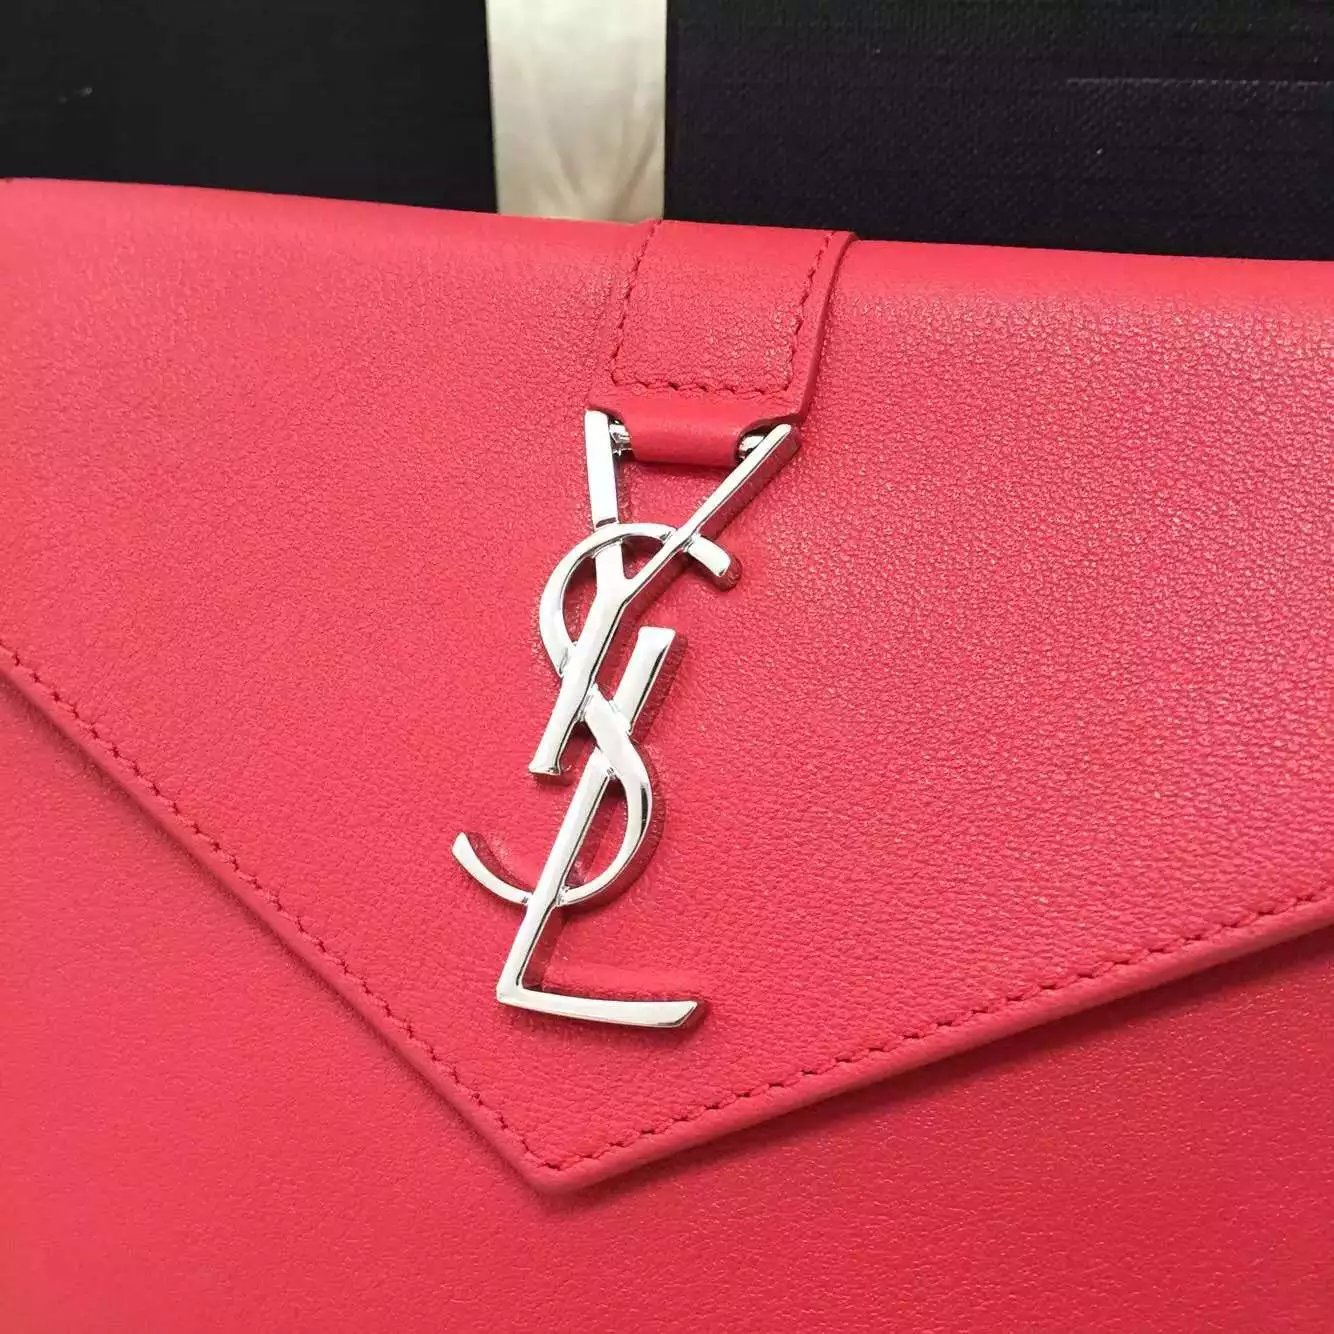 Limited Edition!2016 New Saint Laurent Bag Cheap Sale-Saint Laurent Trio Bag in Red Calfskin Leather